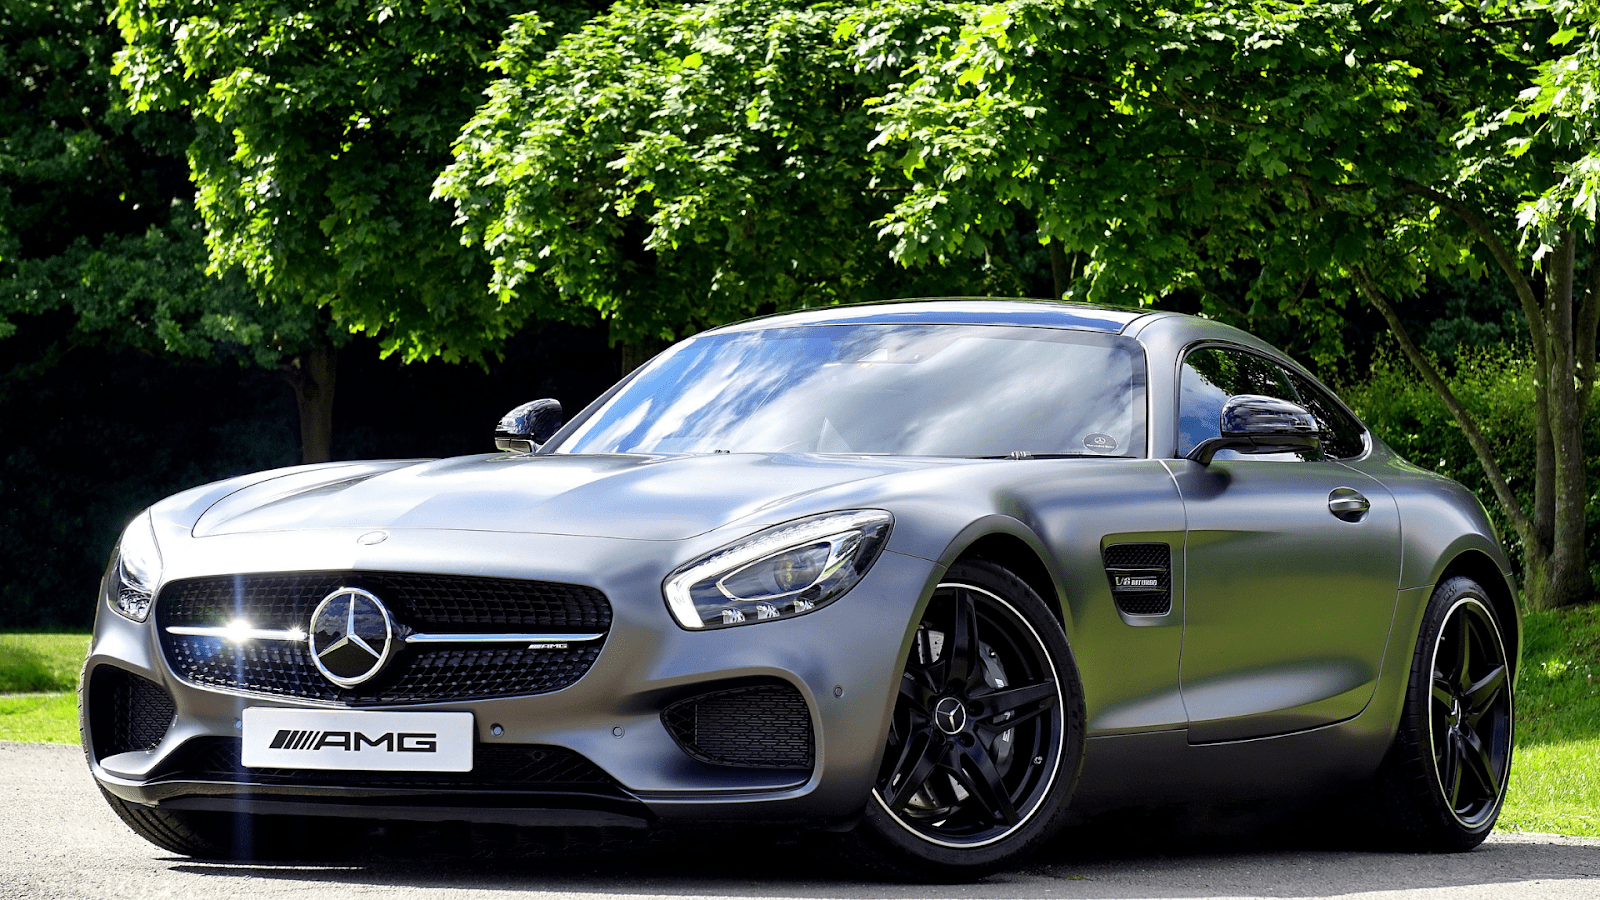 Silver Mercedes Benz AMG Luxury Cars | Brittany Corporation